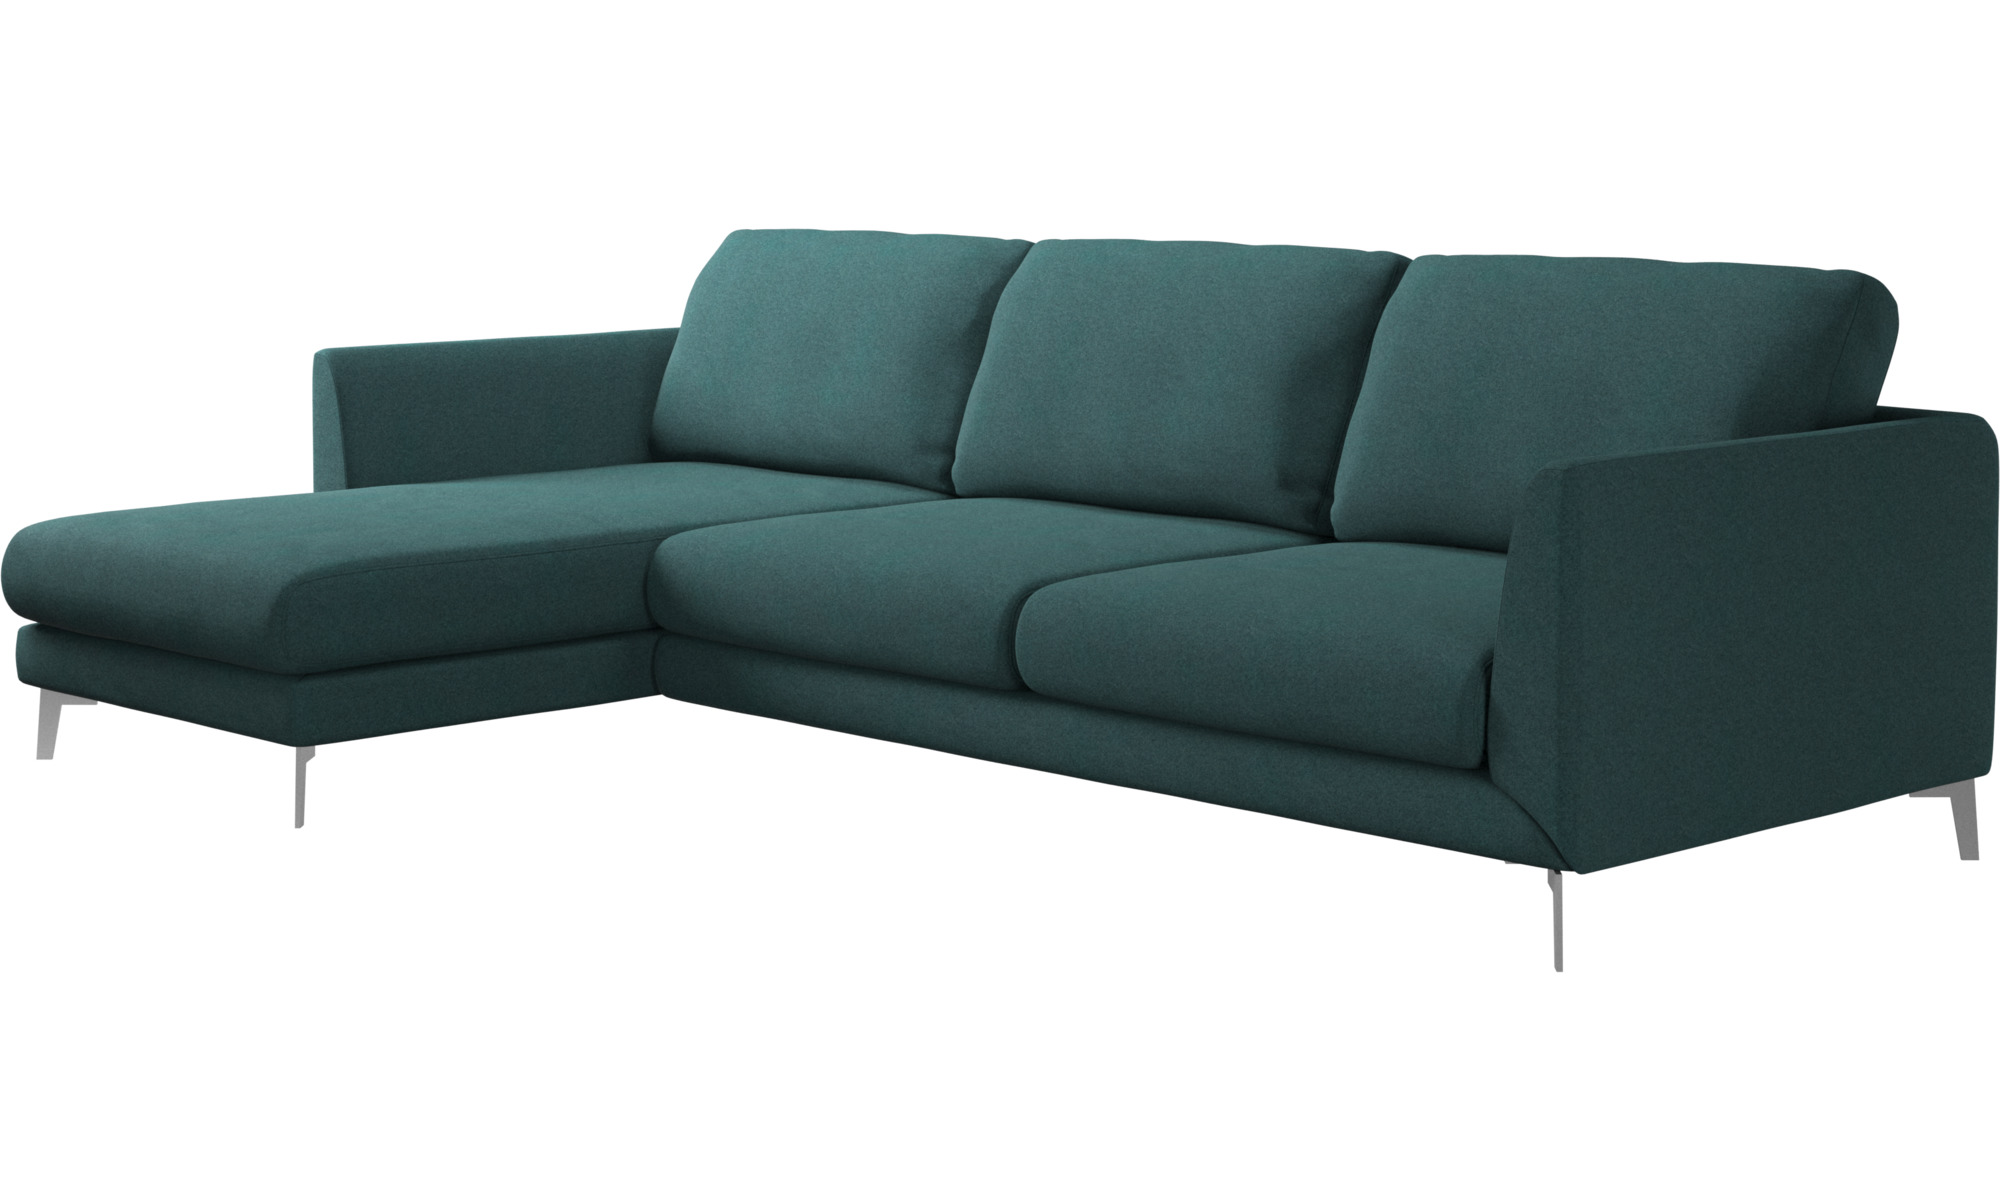 chaise longue fabric sofa tufted leather restoration hardware sofas fargo with resting unit boconcept